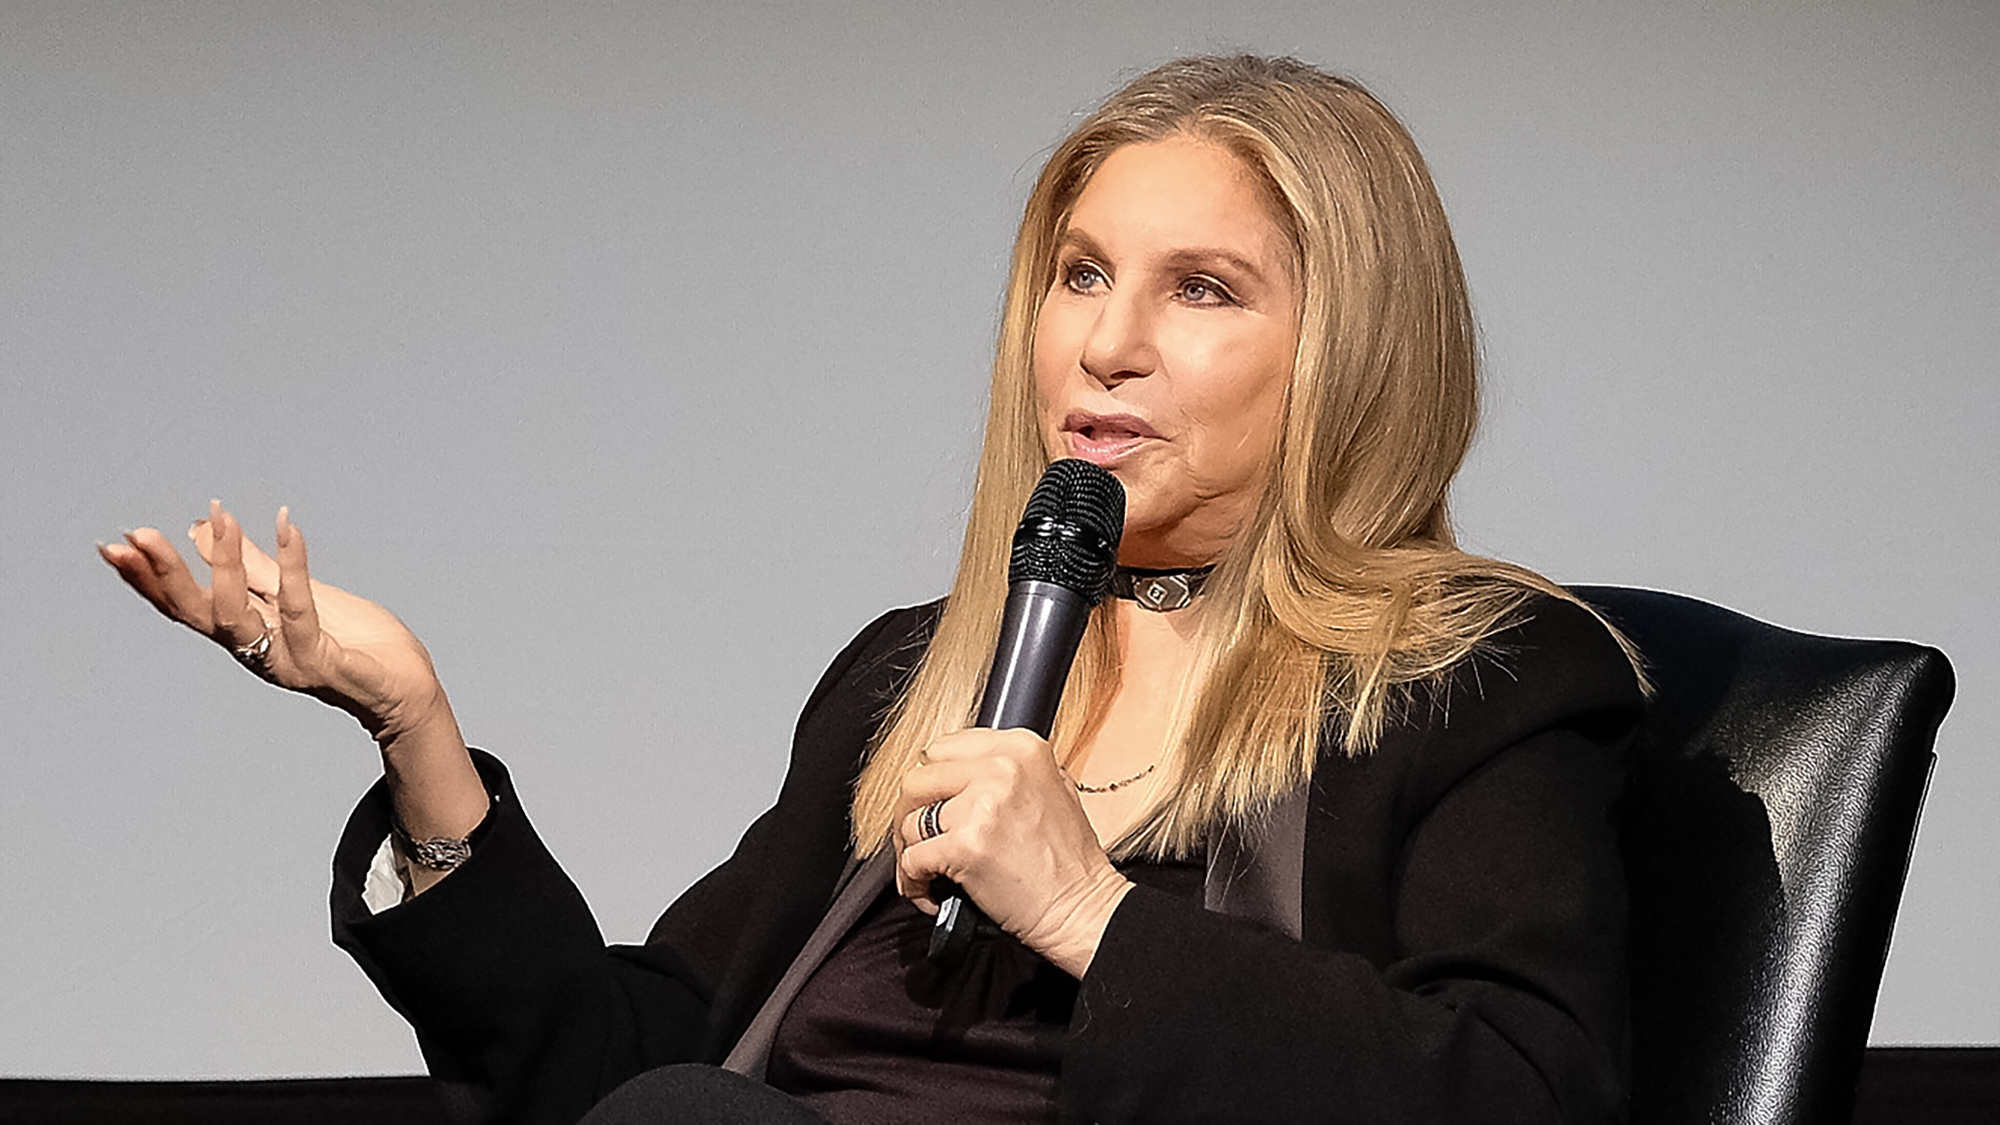 Barbra Streisand: Barbra: The Music, The Mem'ries, The Magic